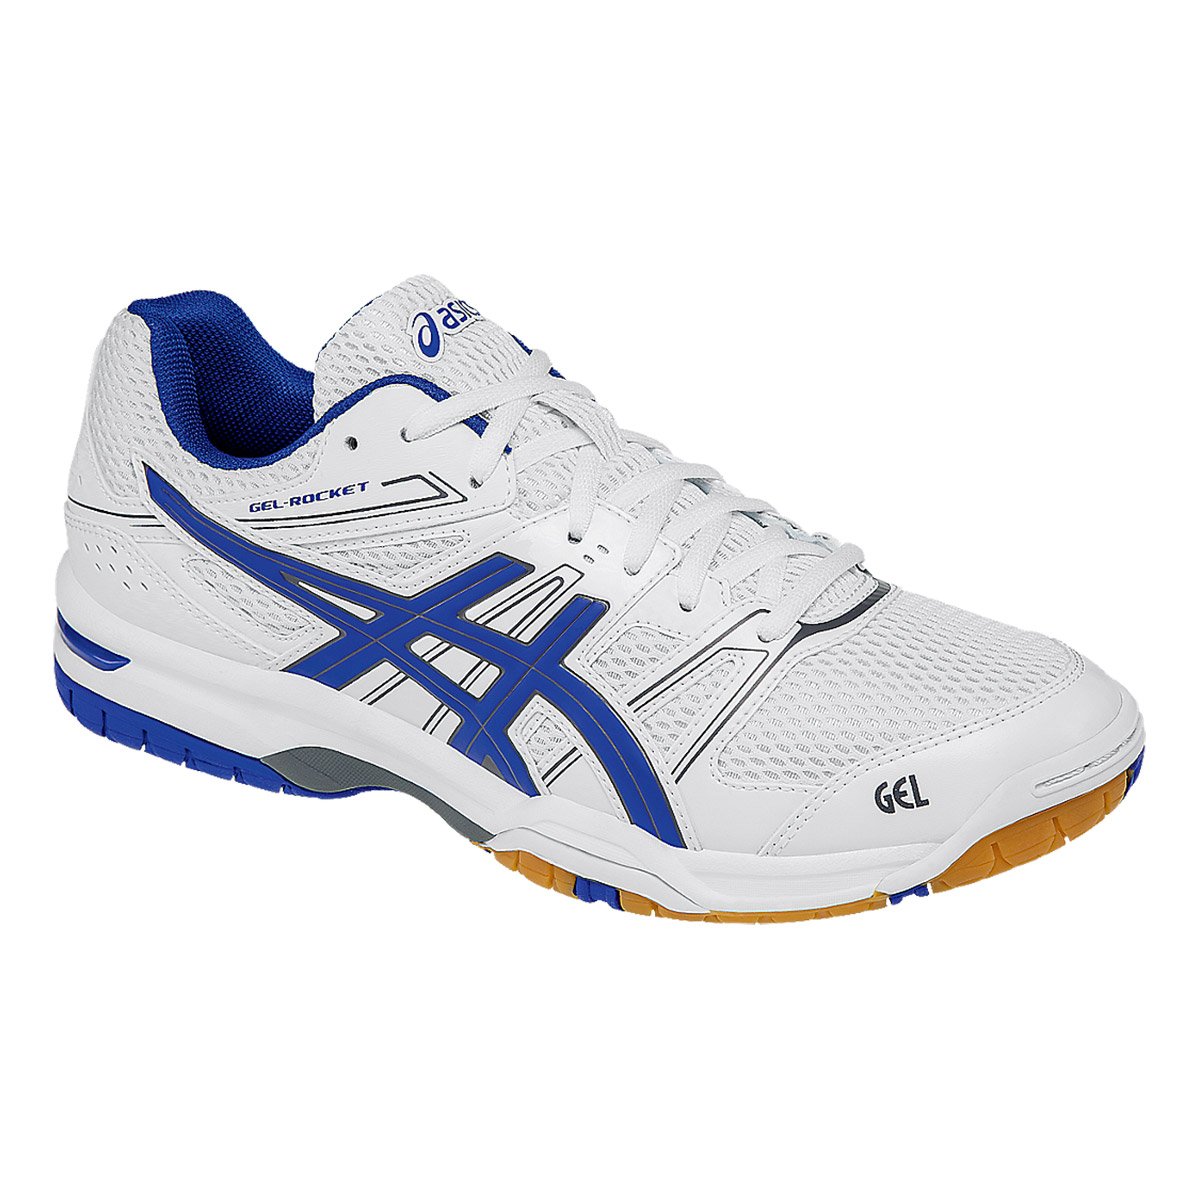 Squash Shoes, Squash, Sports, Buy, Asics, Asics Gel-Rocket 7 Squash Shoes  (White/Blue/Titanium)